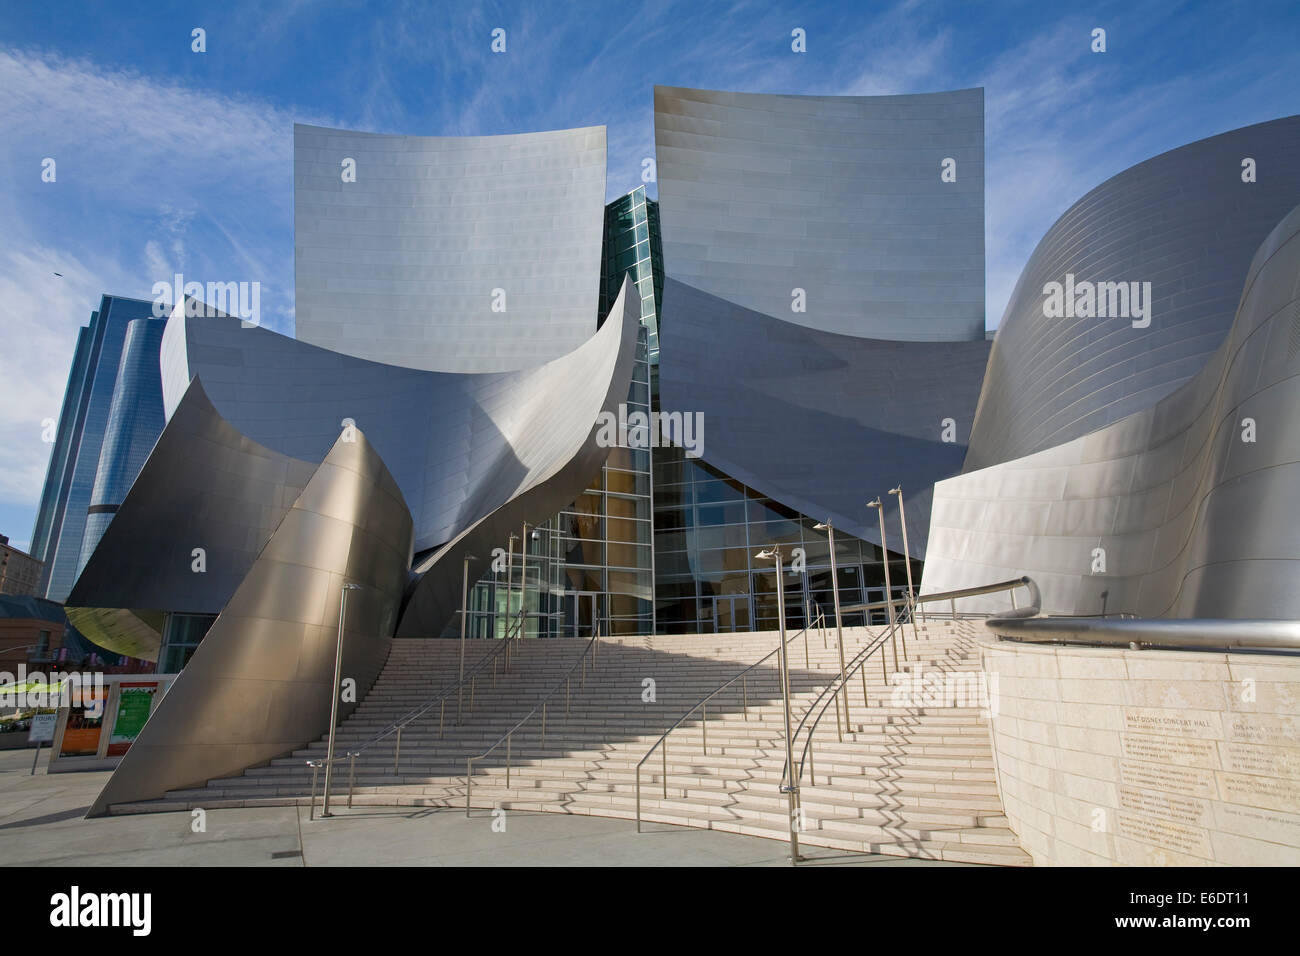 Walt Disney Concert Hall By Frank Gehry, Los Angeles Music. Best Educational Films Projector Lamp Central. Life Insurance Free Quote Loan Car Collateral. Fire Alarm Monitoring Software. Refinancing Interest Rates Best Forex Broker. Online School Medical Assistant. Alliance It Consulting Tv Providers In Dallas. Antivirus Software For Mac Os X. Pilates Of Cherry Creek Balloon Event Company